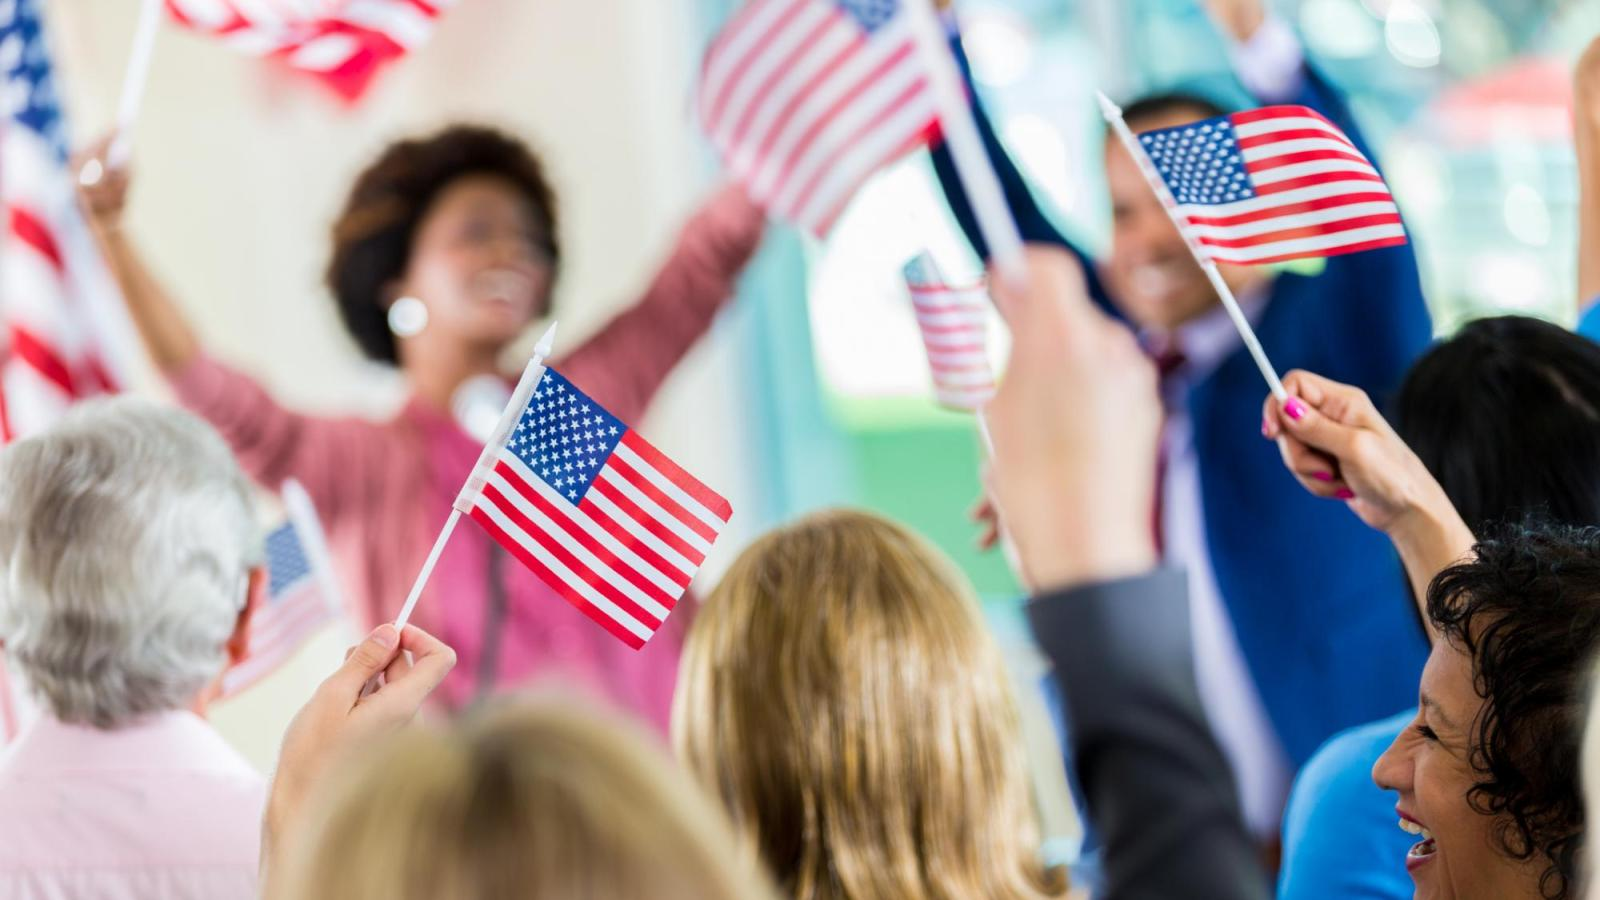 Women wave American flags at an election event